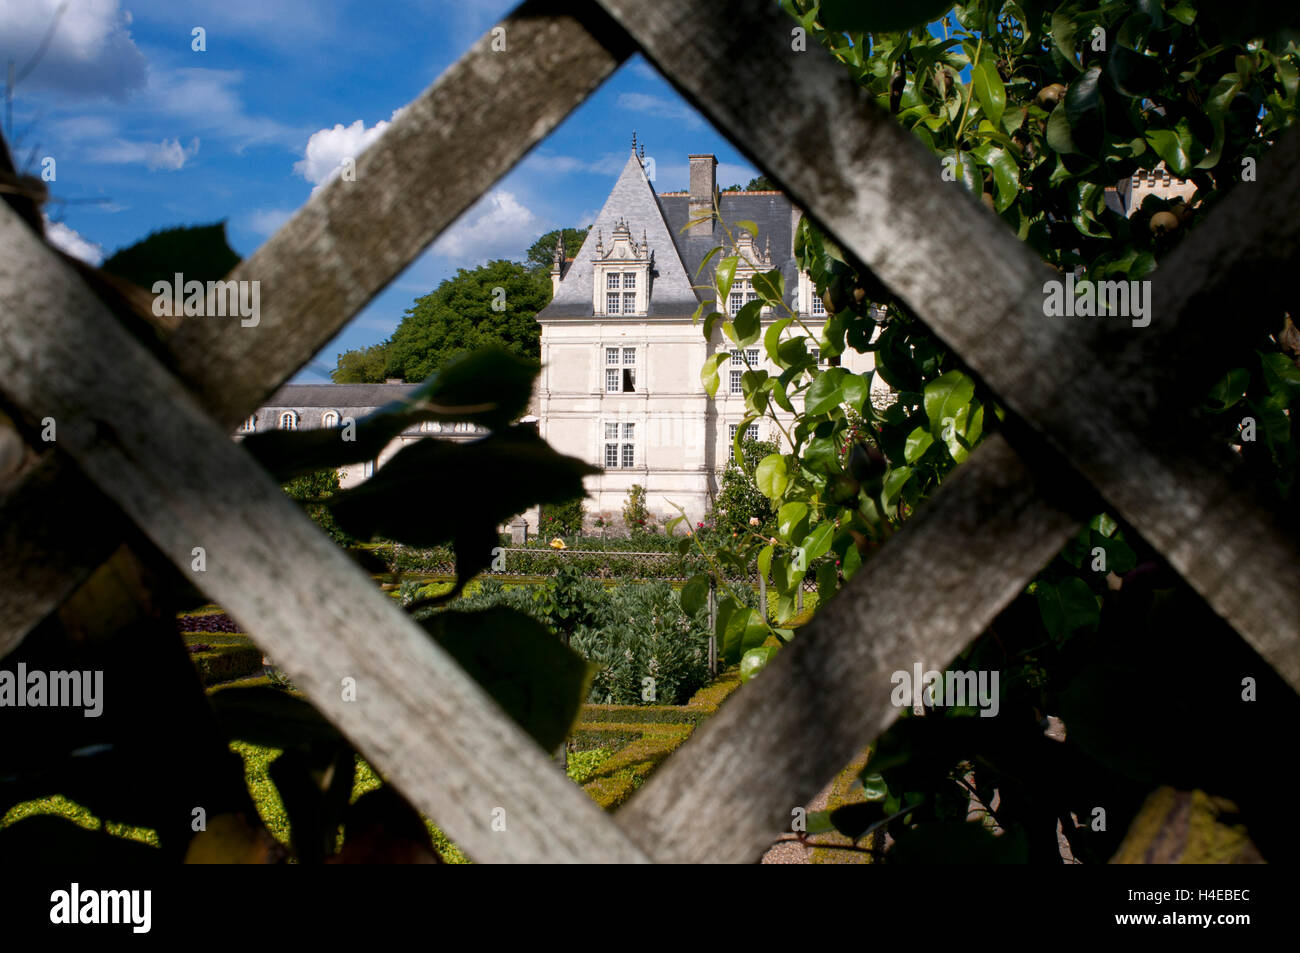 The castle and the gardens of Villandry, Loire Valley, France. The beautiful castle and gardens at Villandry, UNESCO - Stock Image